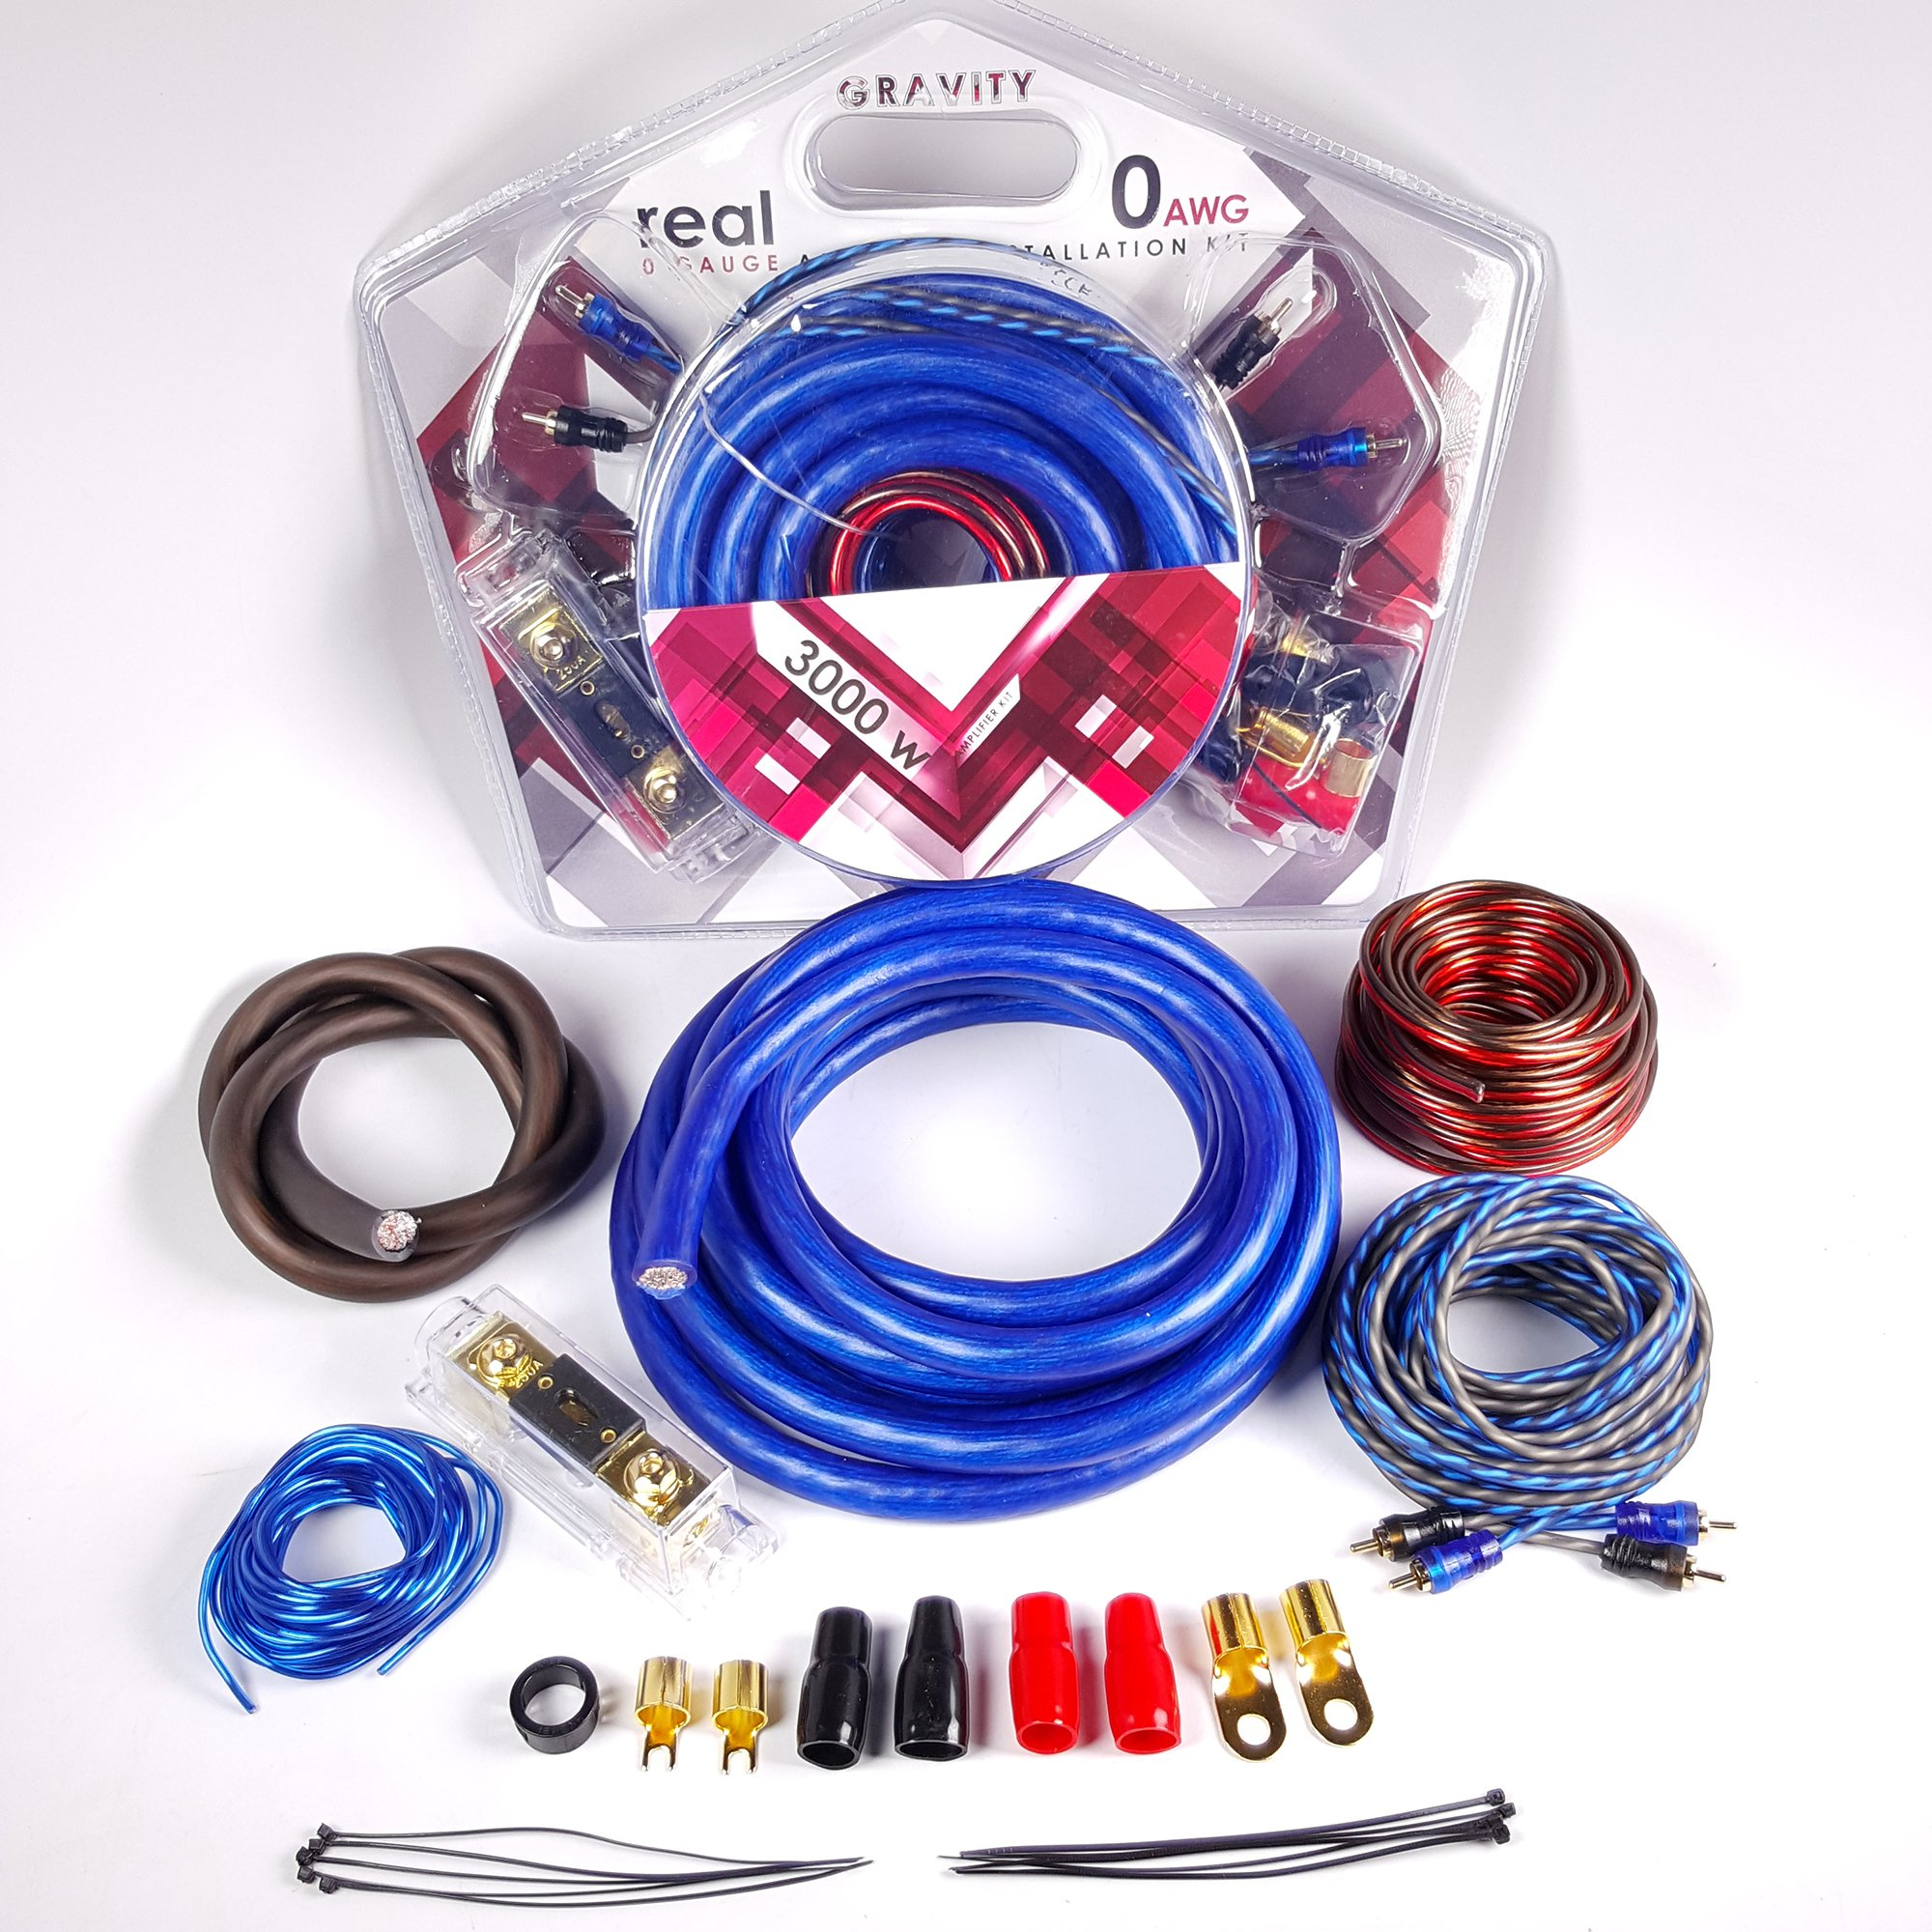 Gravity GR-KIT0ANLB 0 Gauge Amplifier Installation ANL Kit with High Performance RCA and Speaker Wire